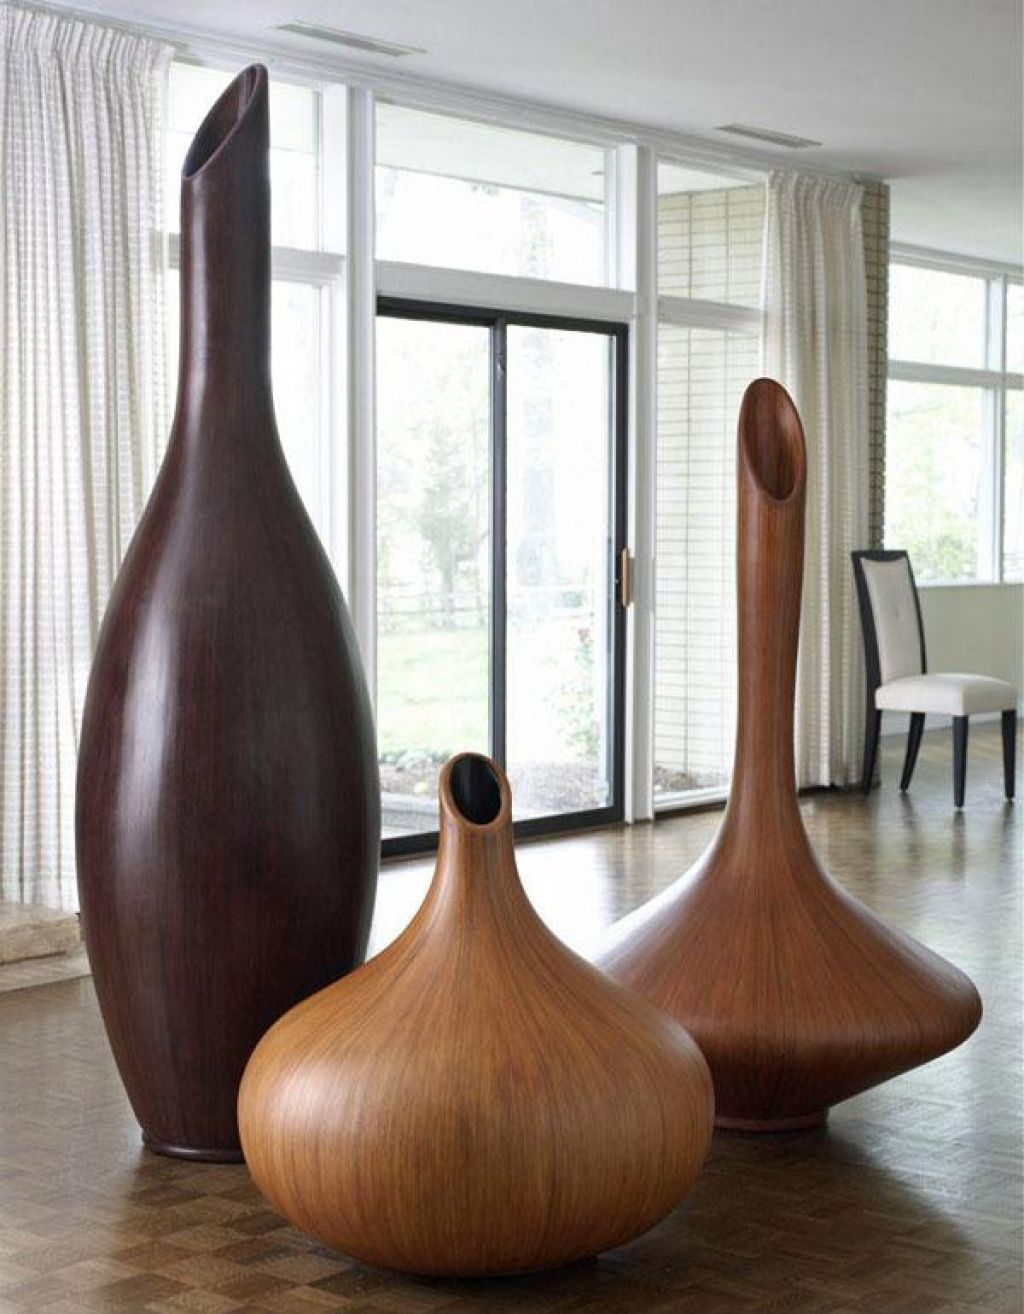 Amazing tall decorative floor vases breathtaking living room amazing tall decorative floor vases breathtaking living room interior decor with the touches of tall reviewsmspy